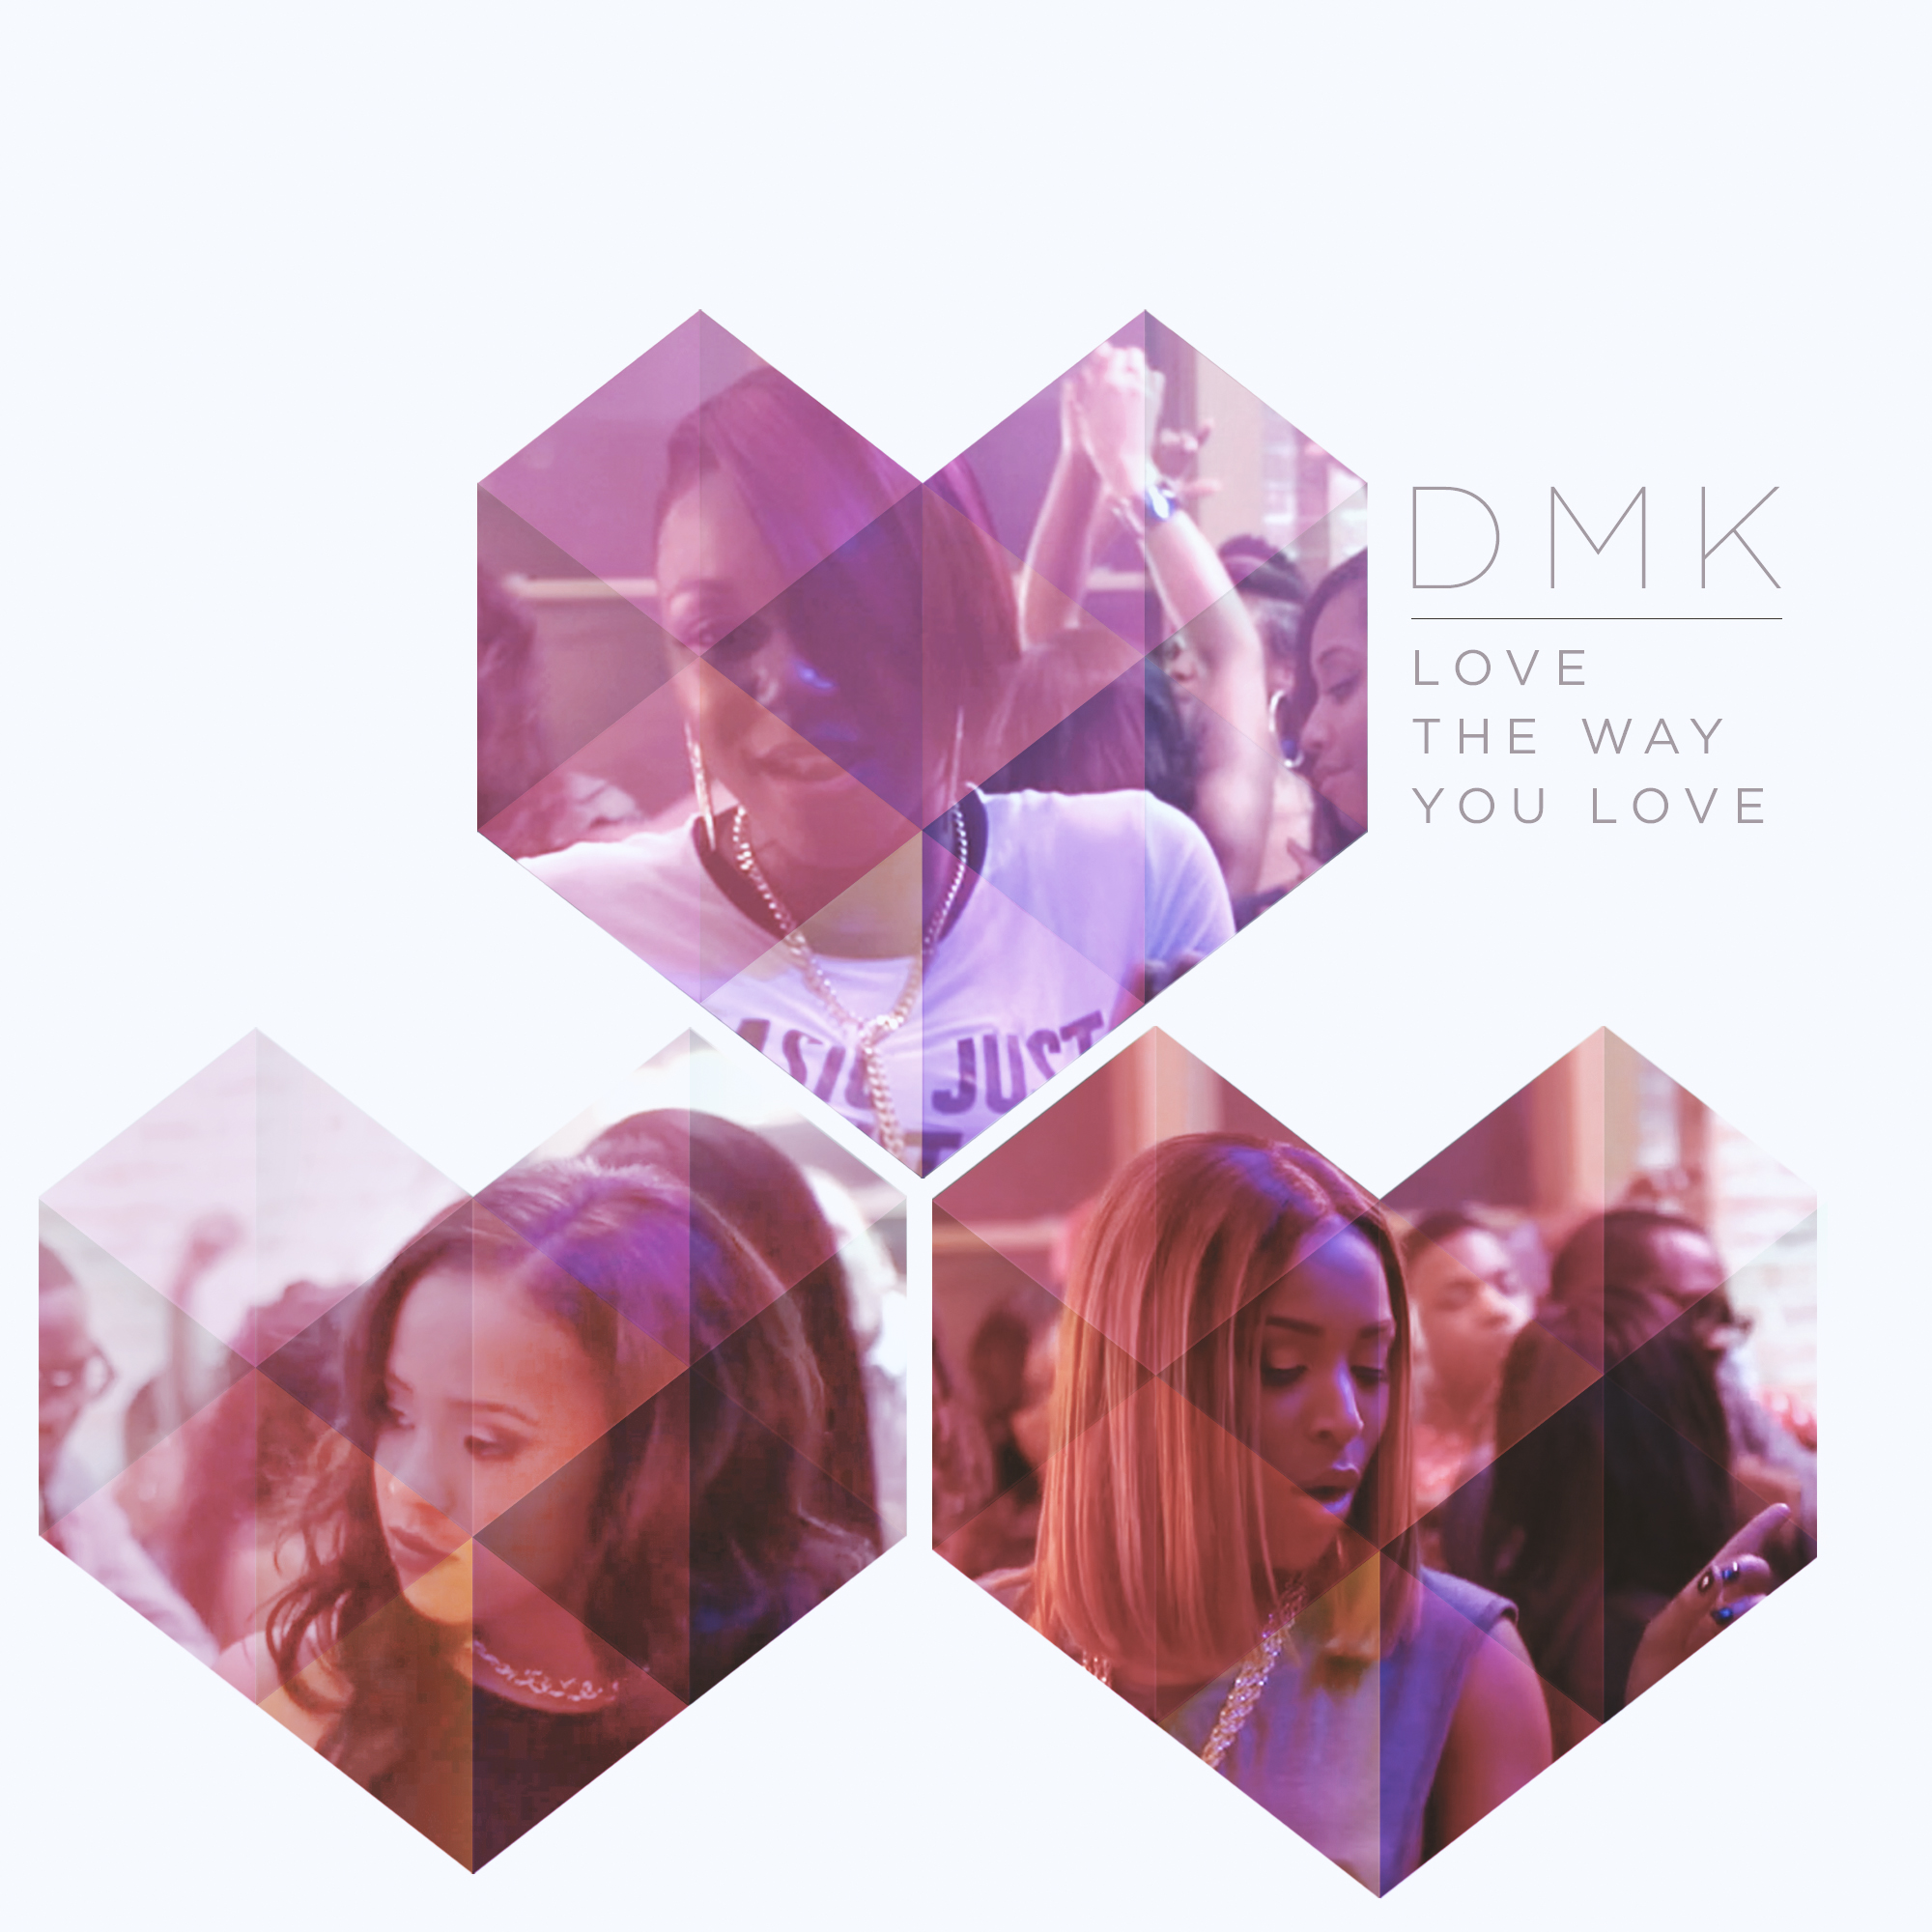 DMK Love the Way You Love Me